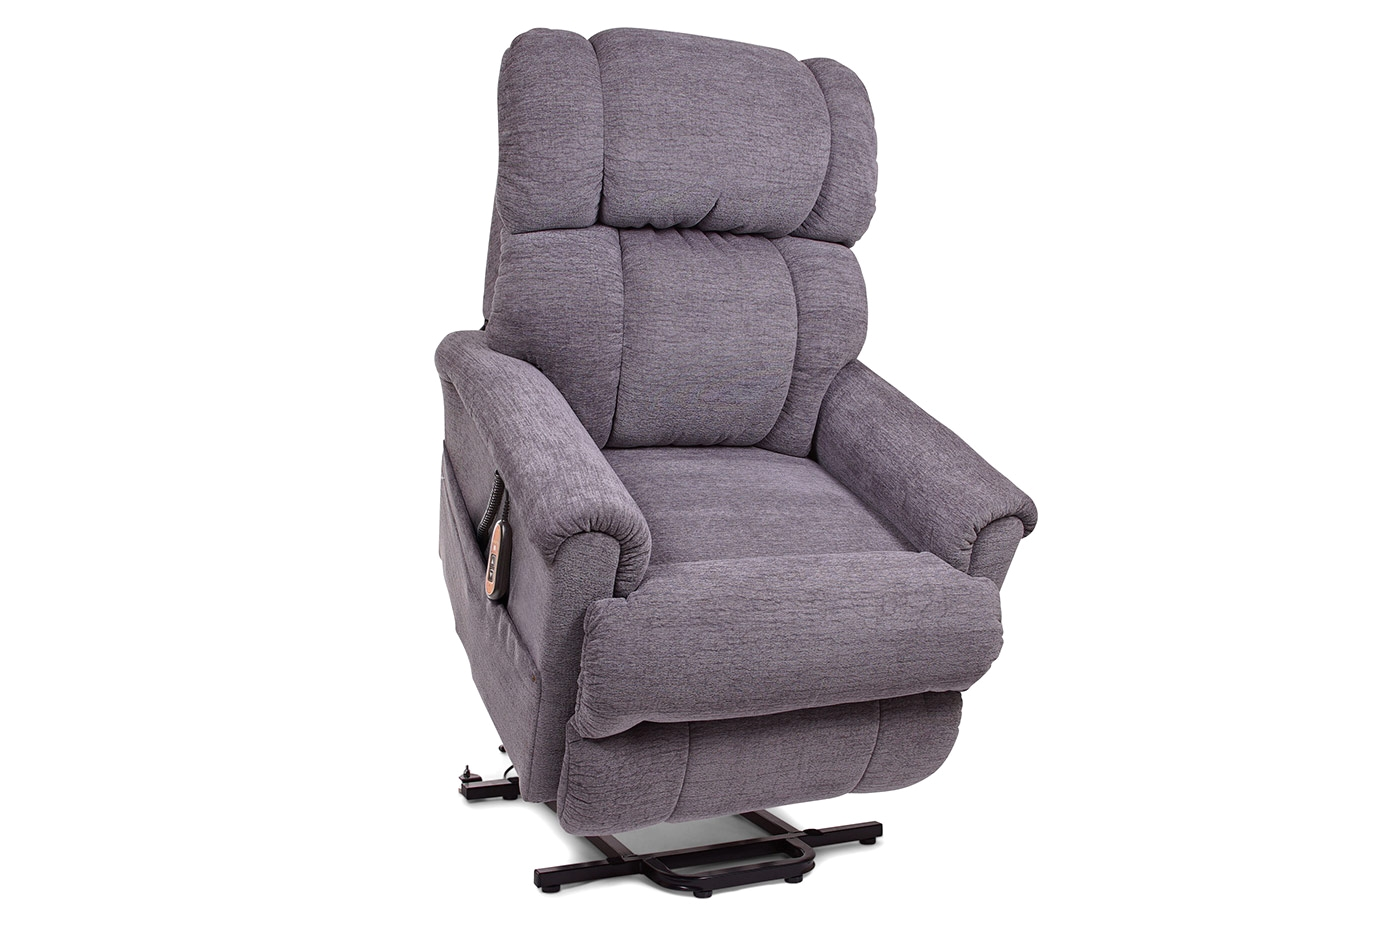 Rent A Lift Chair Recliner Near Me Space Saver Lift Chair Small User Height 5 0 5 3 Mountain Aire